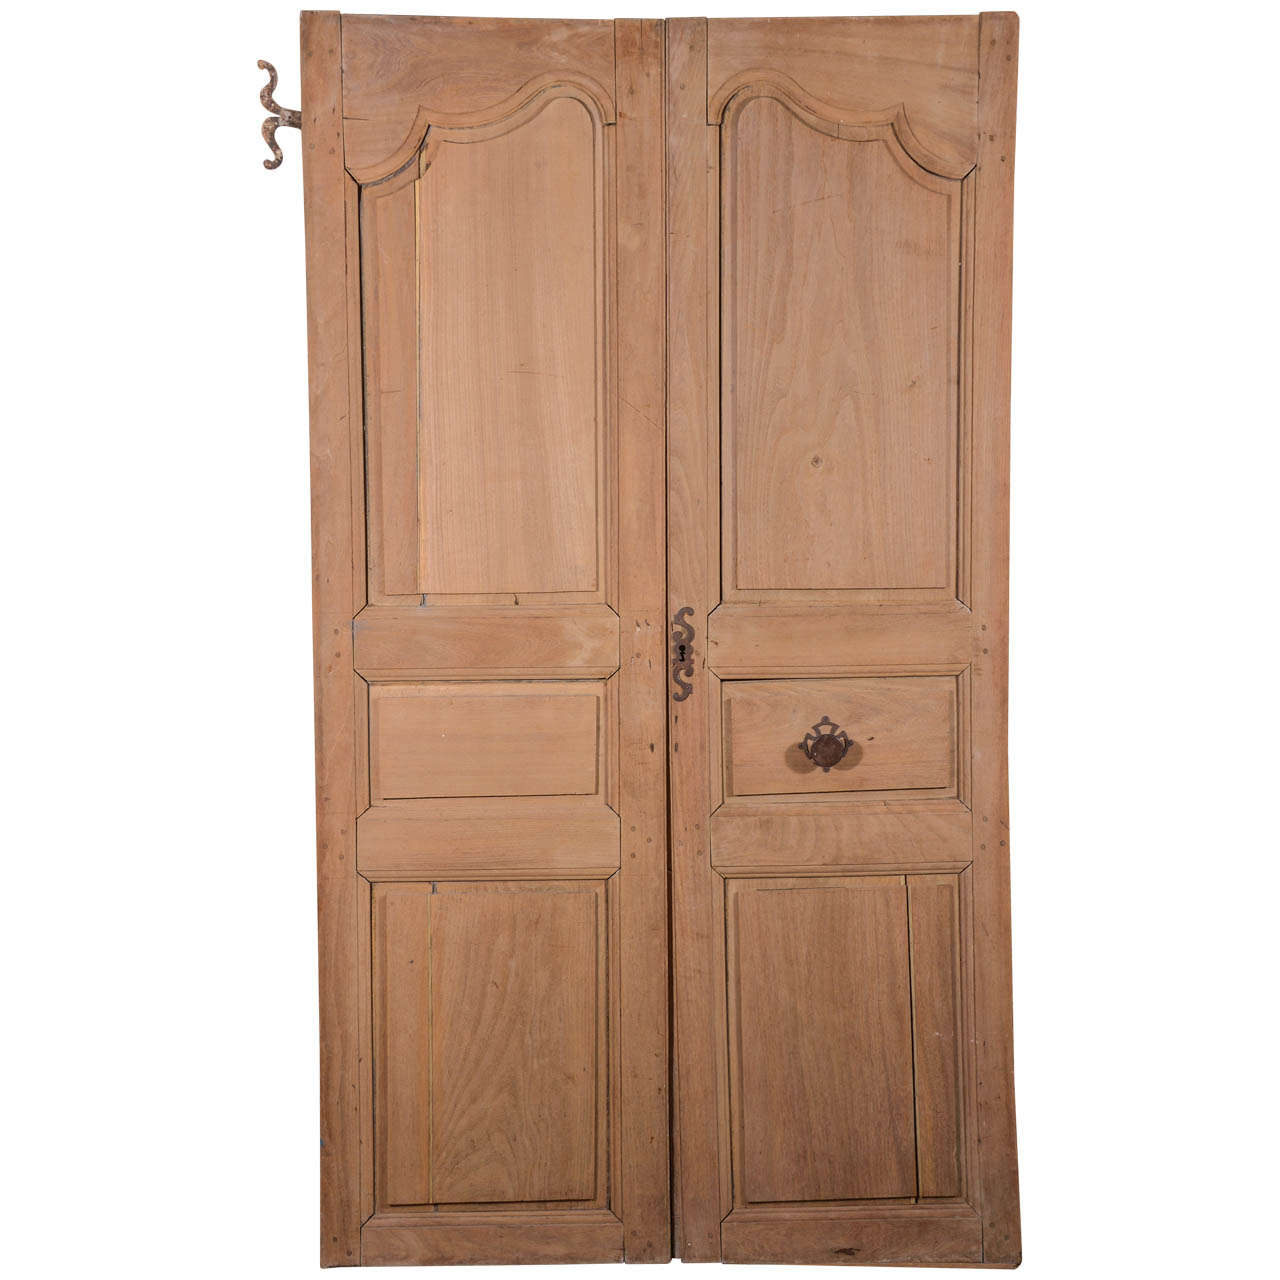 1280 #452B1C Pair Of 18th Century French Interior Doors For Sale At 1stdibs  Save Image